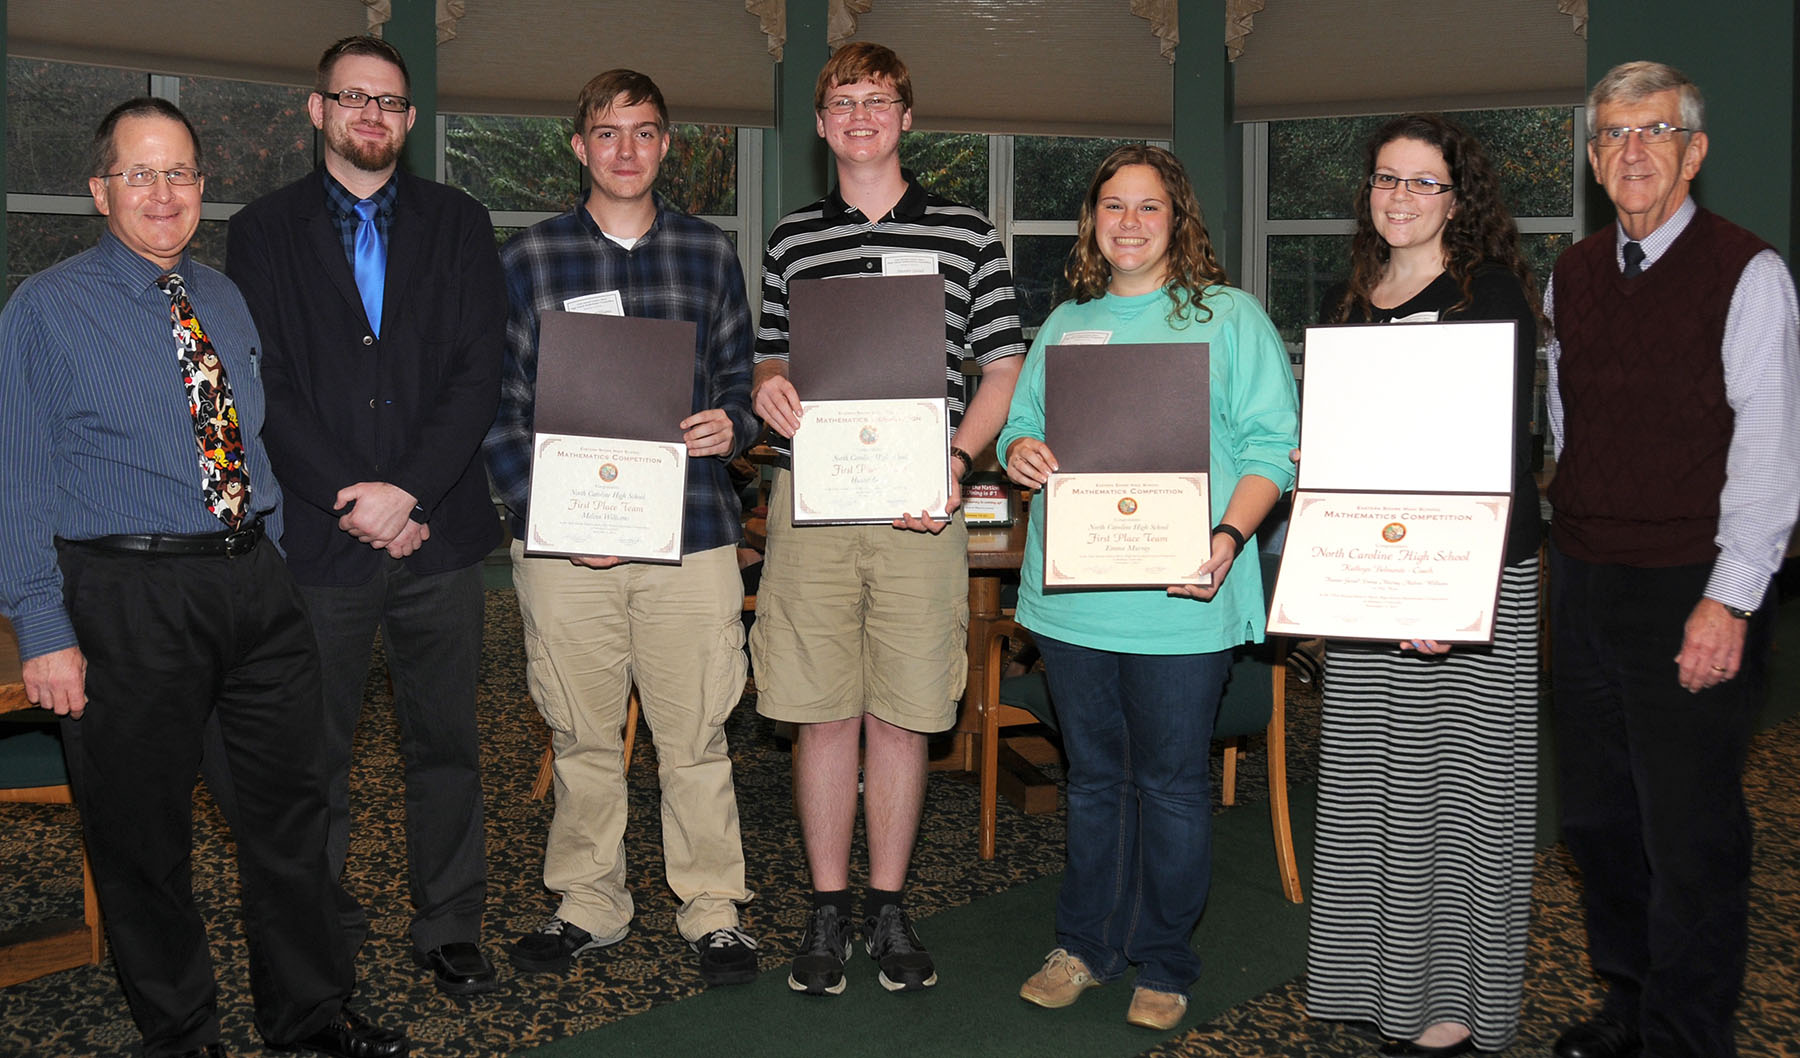 32nd annual Eastern Shore High School Mathematics Competition